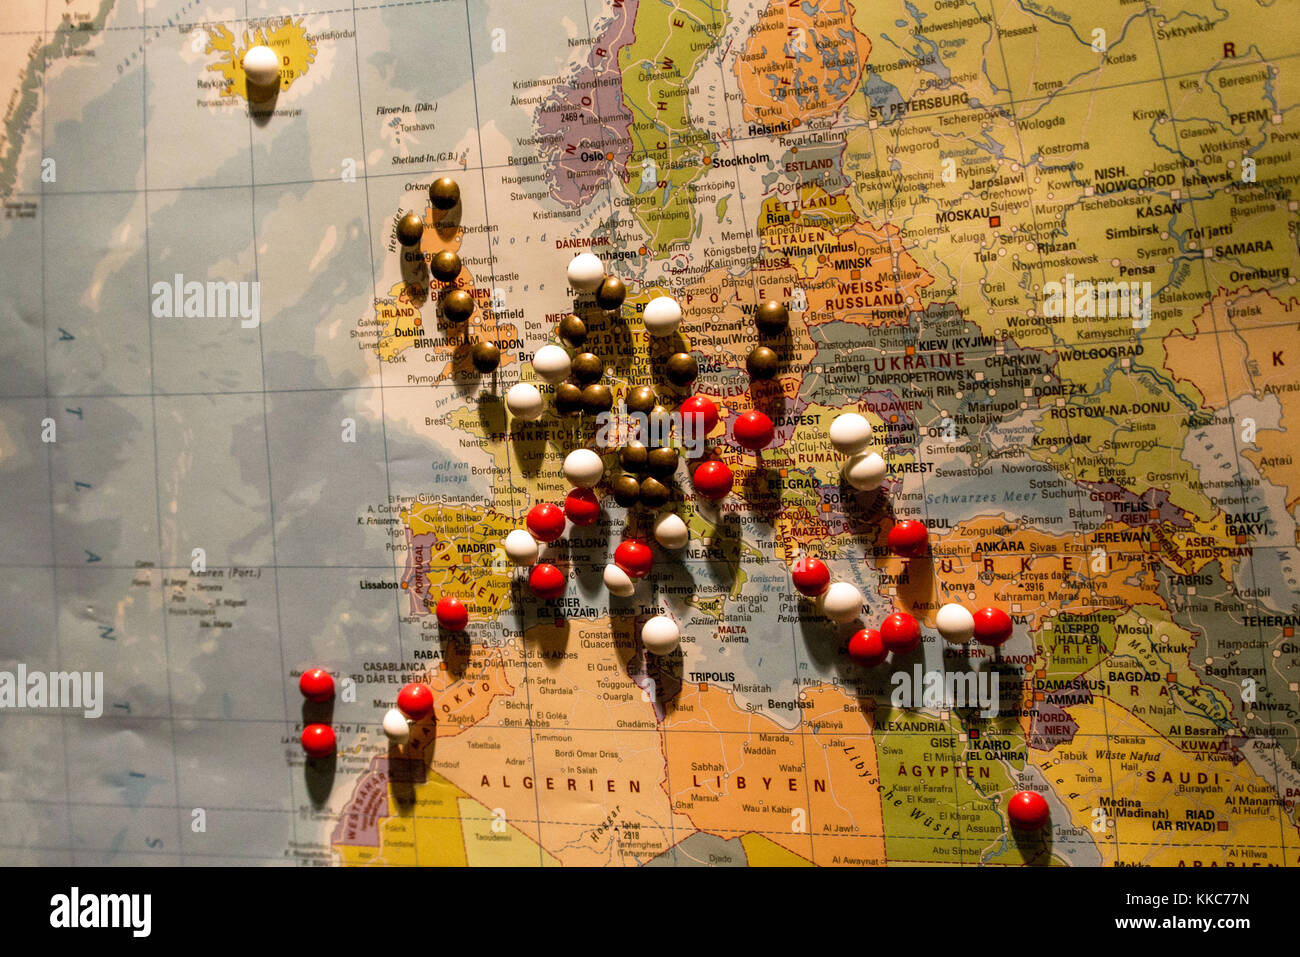 Continent Map Pin Stock Photos Continent Map Pin Stock Images